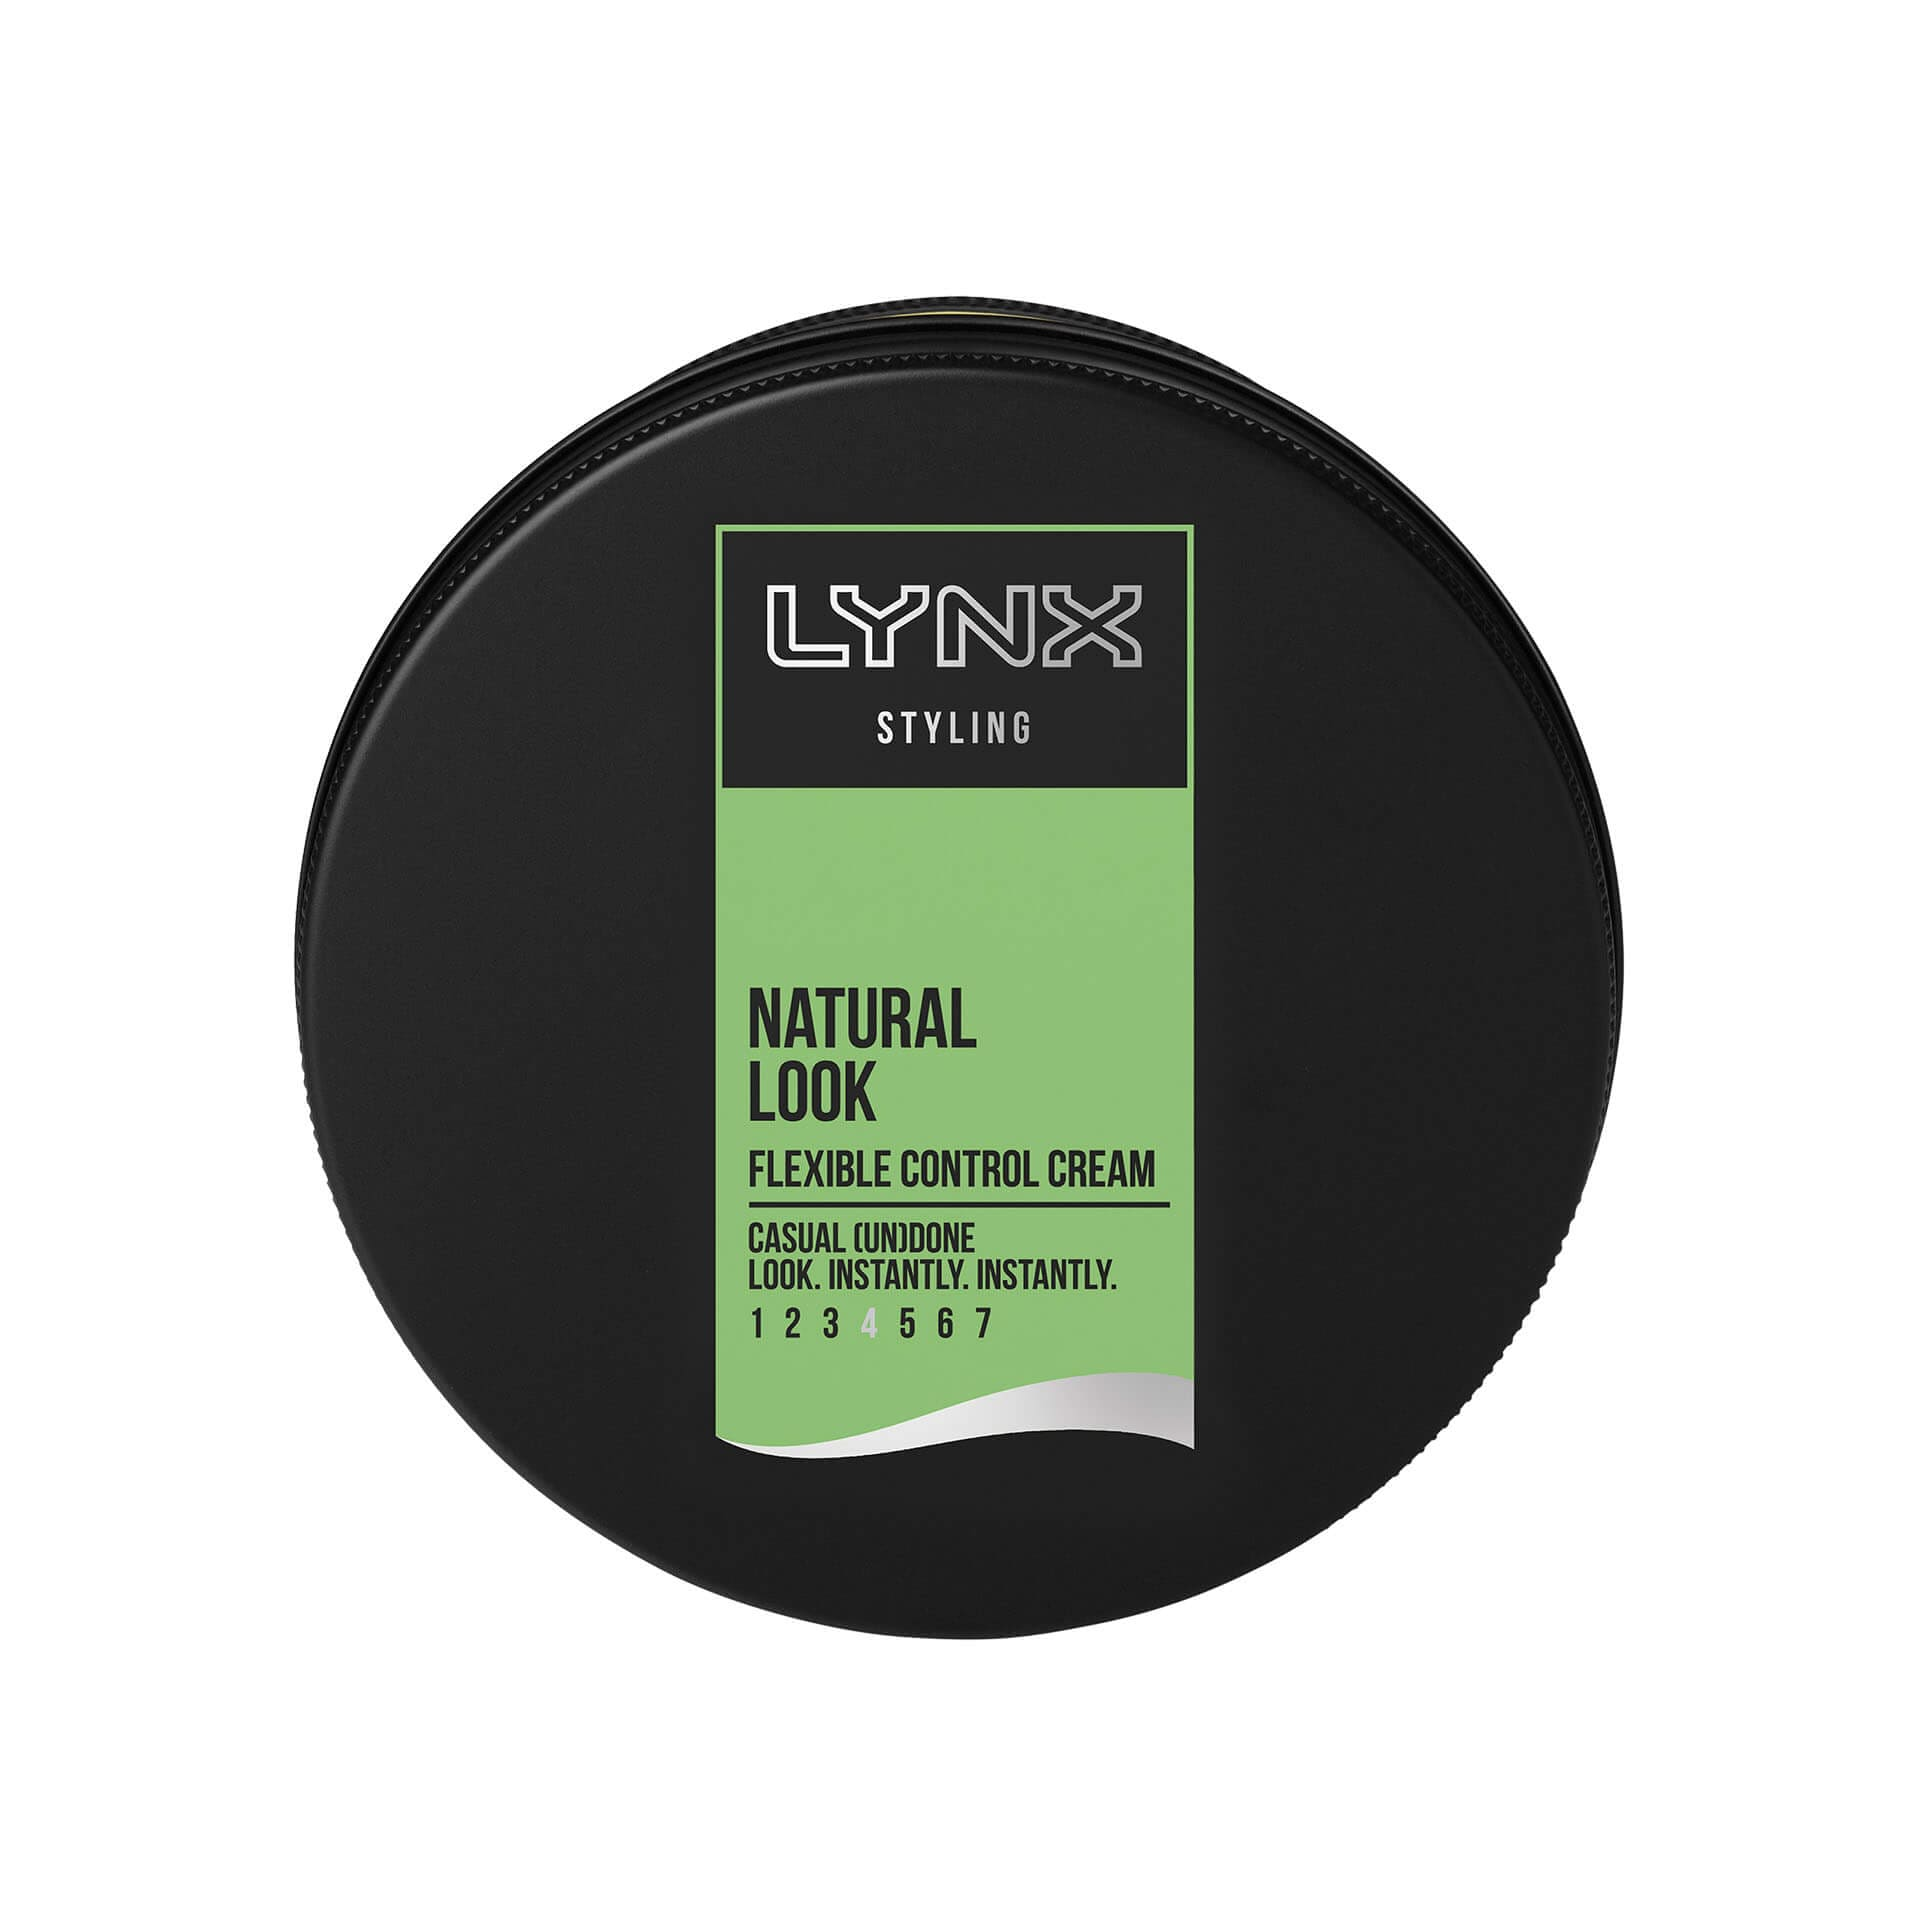 Lynx Natural Look Flexible Control Cream